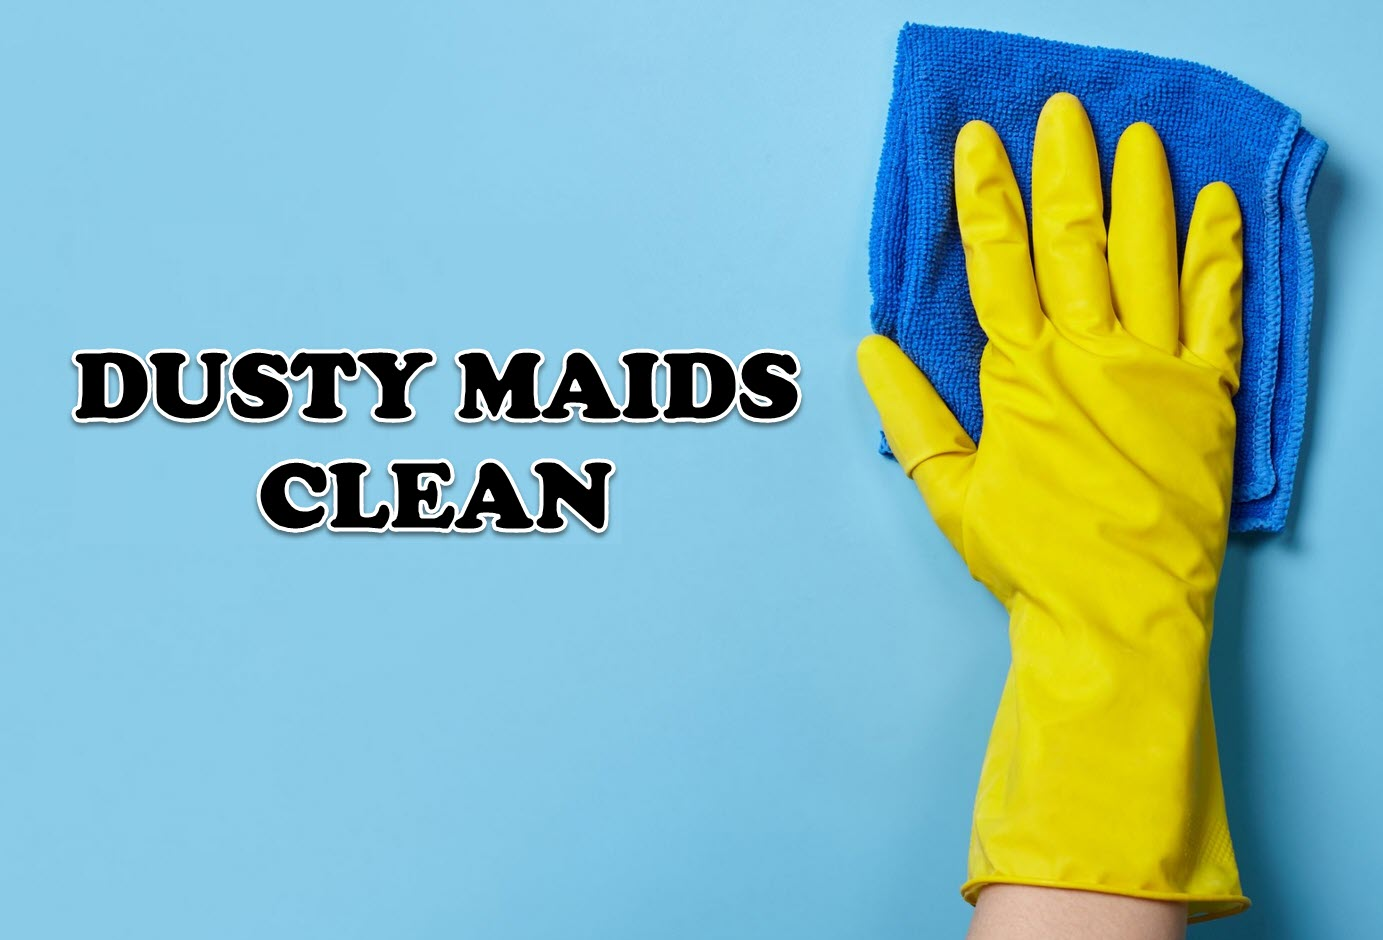 Dusty Maids Clean